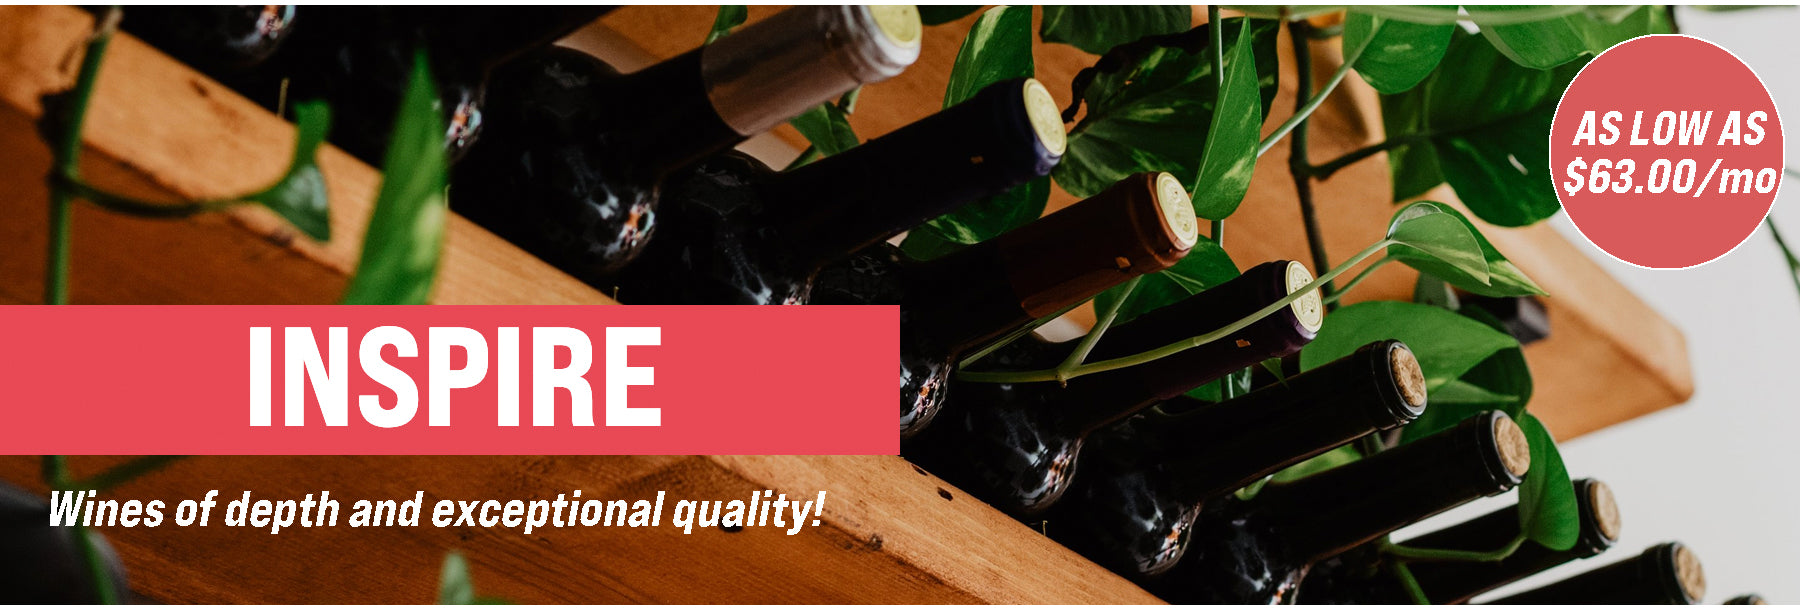 Inspire: wines of depth and exceptional quality